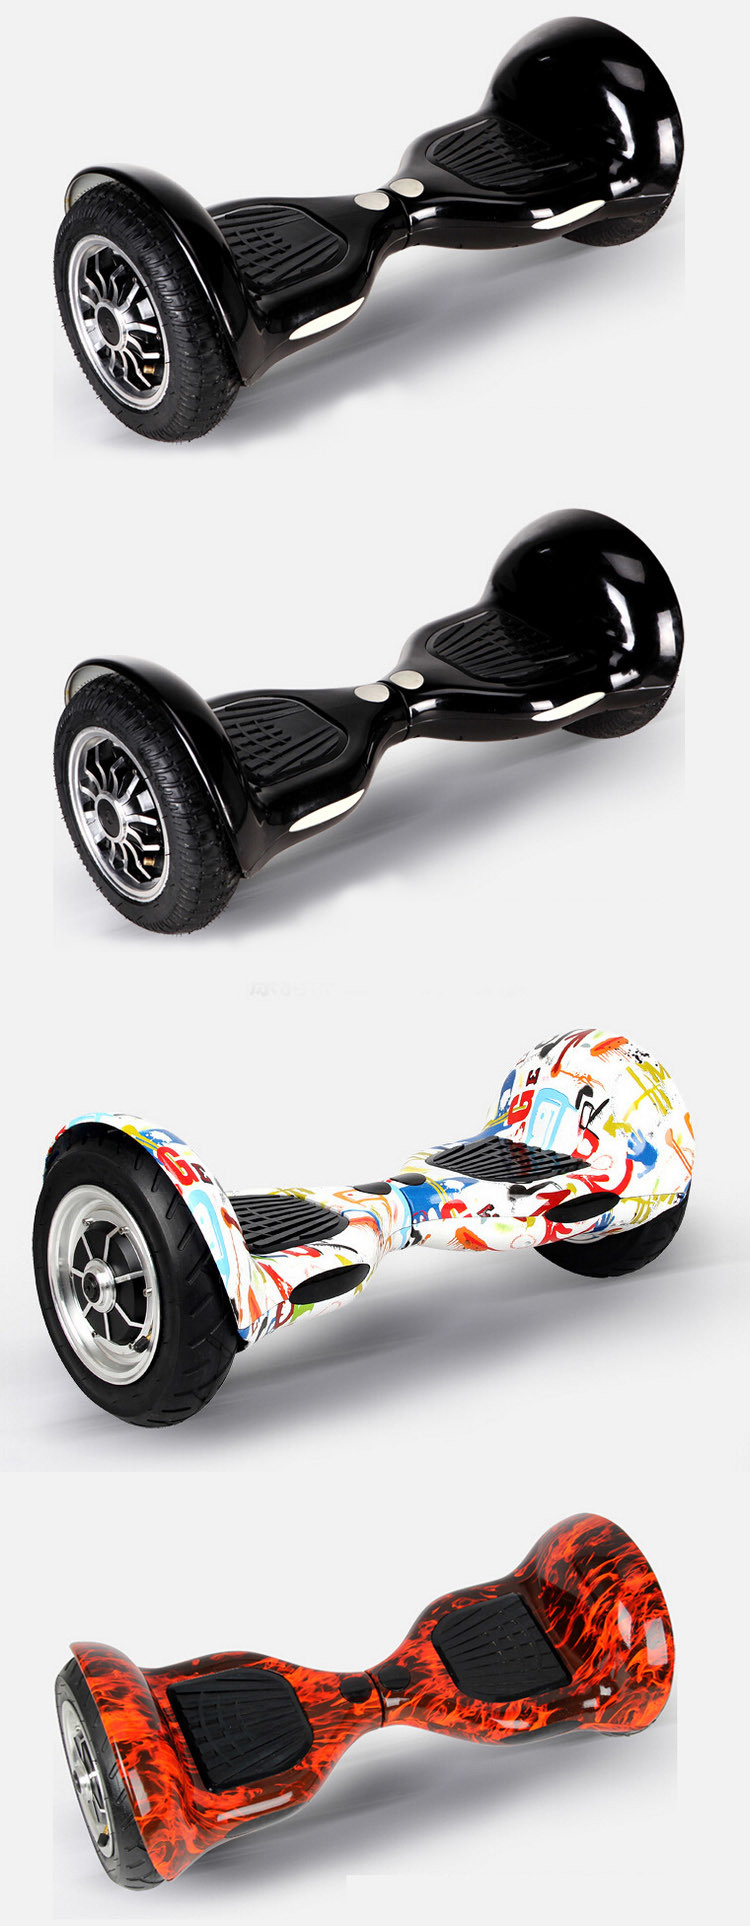 Smartek OEM Electric Gyroscooter Two Wheel Scooter Patinete Electrico E-Scooter Self Balance Hiphop Graffiti Scooter with Bluetooth S-002-Cn